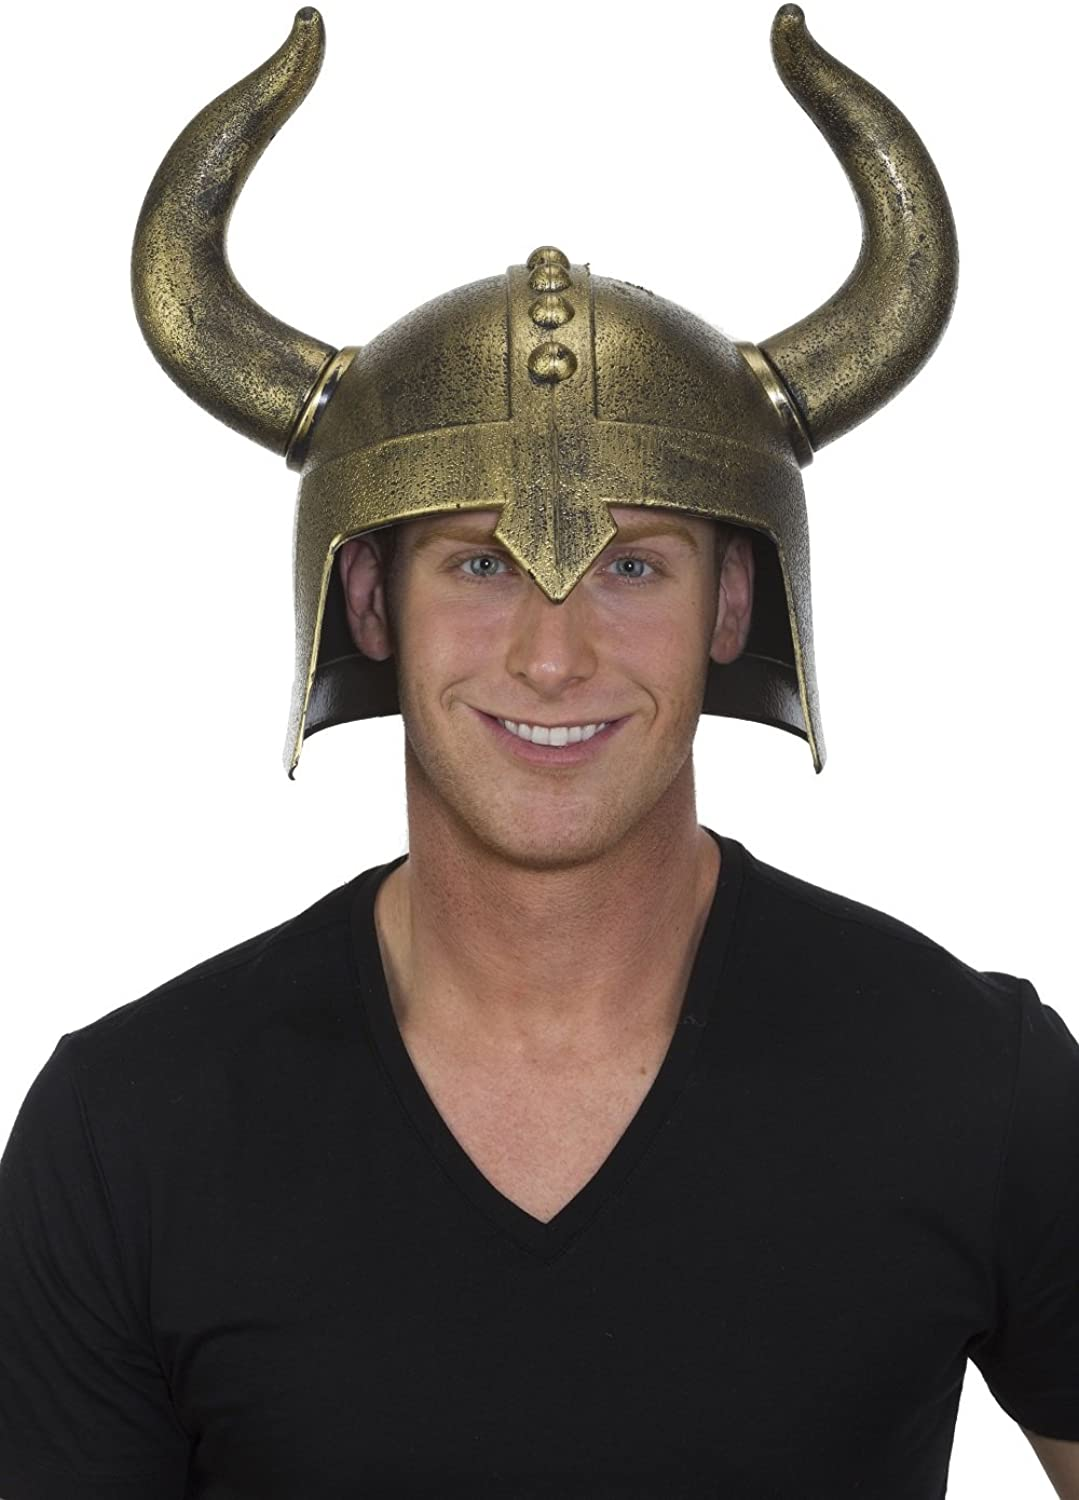 Jacobson Hat Company Men's Medieval Helmet with Horns, Gold, Adjustable